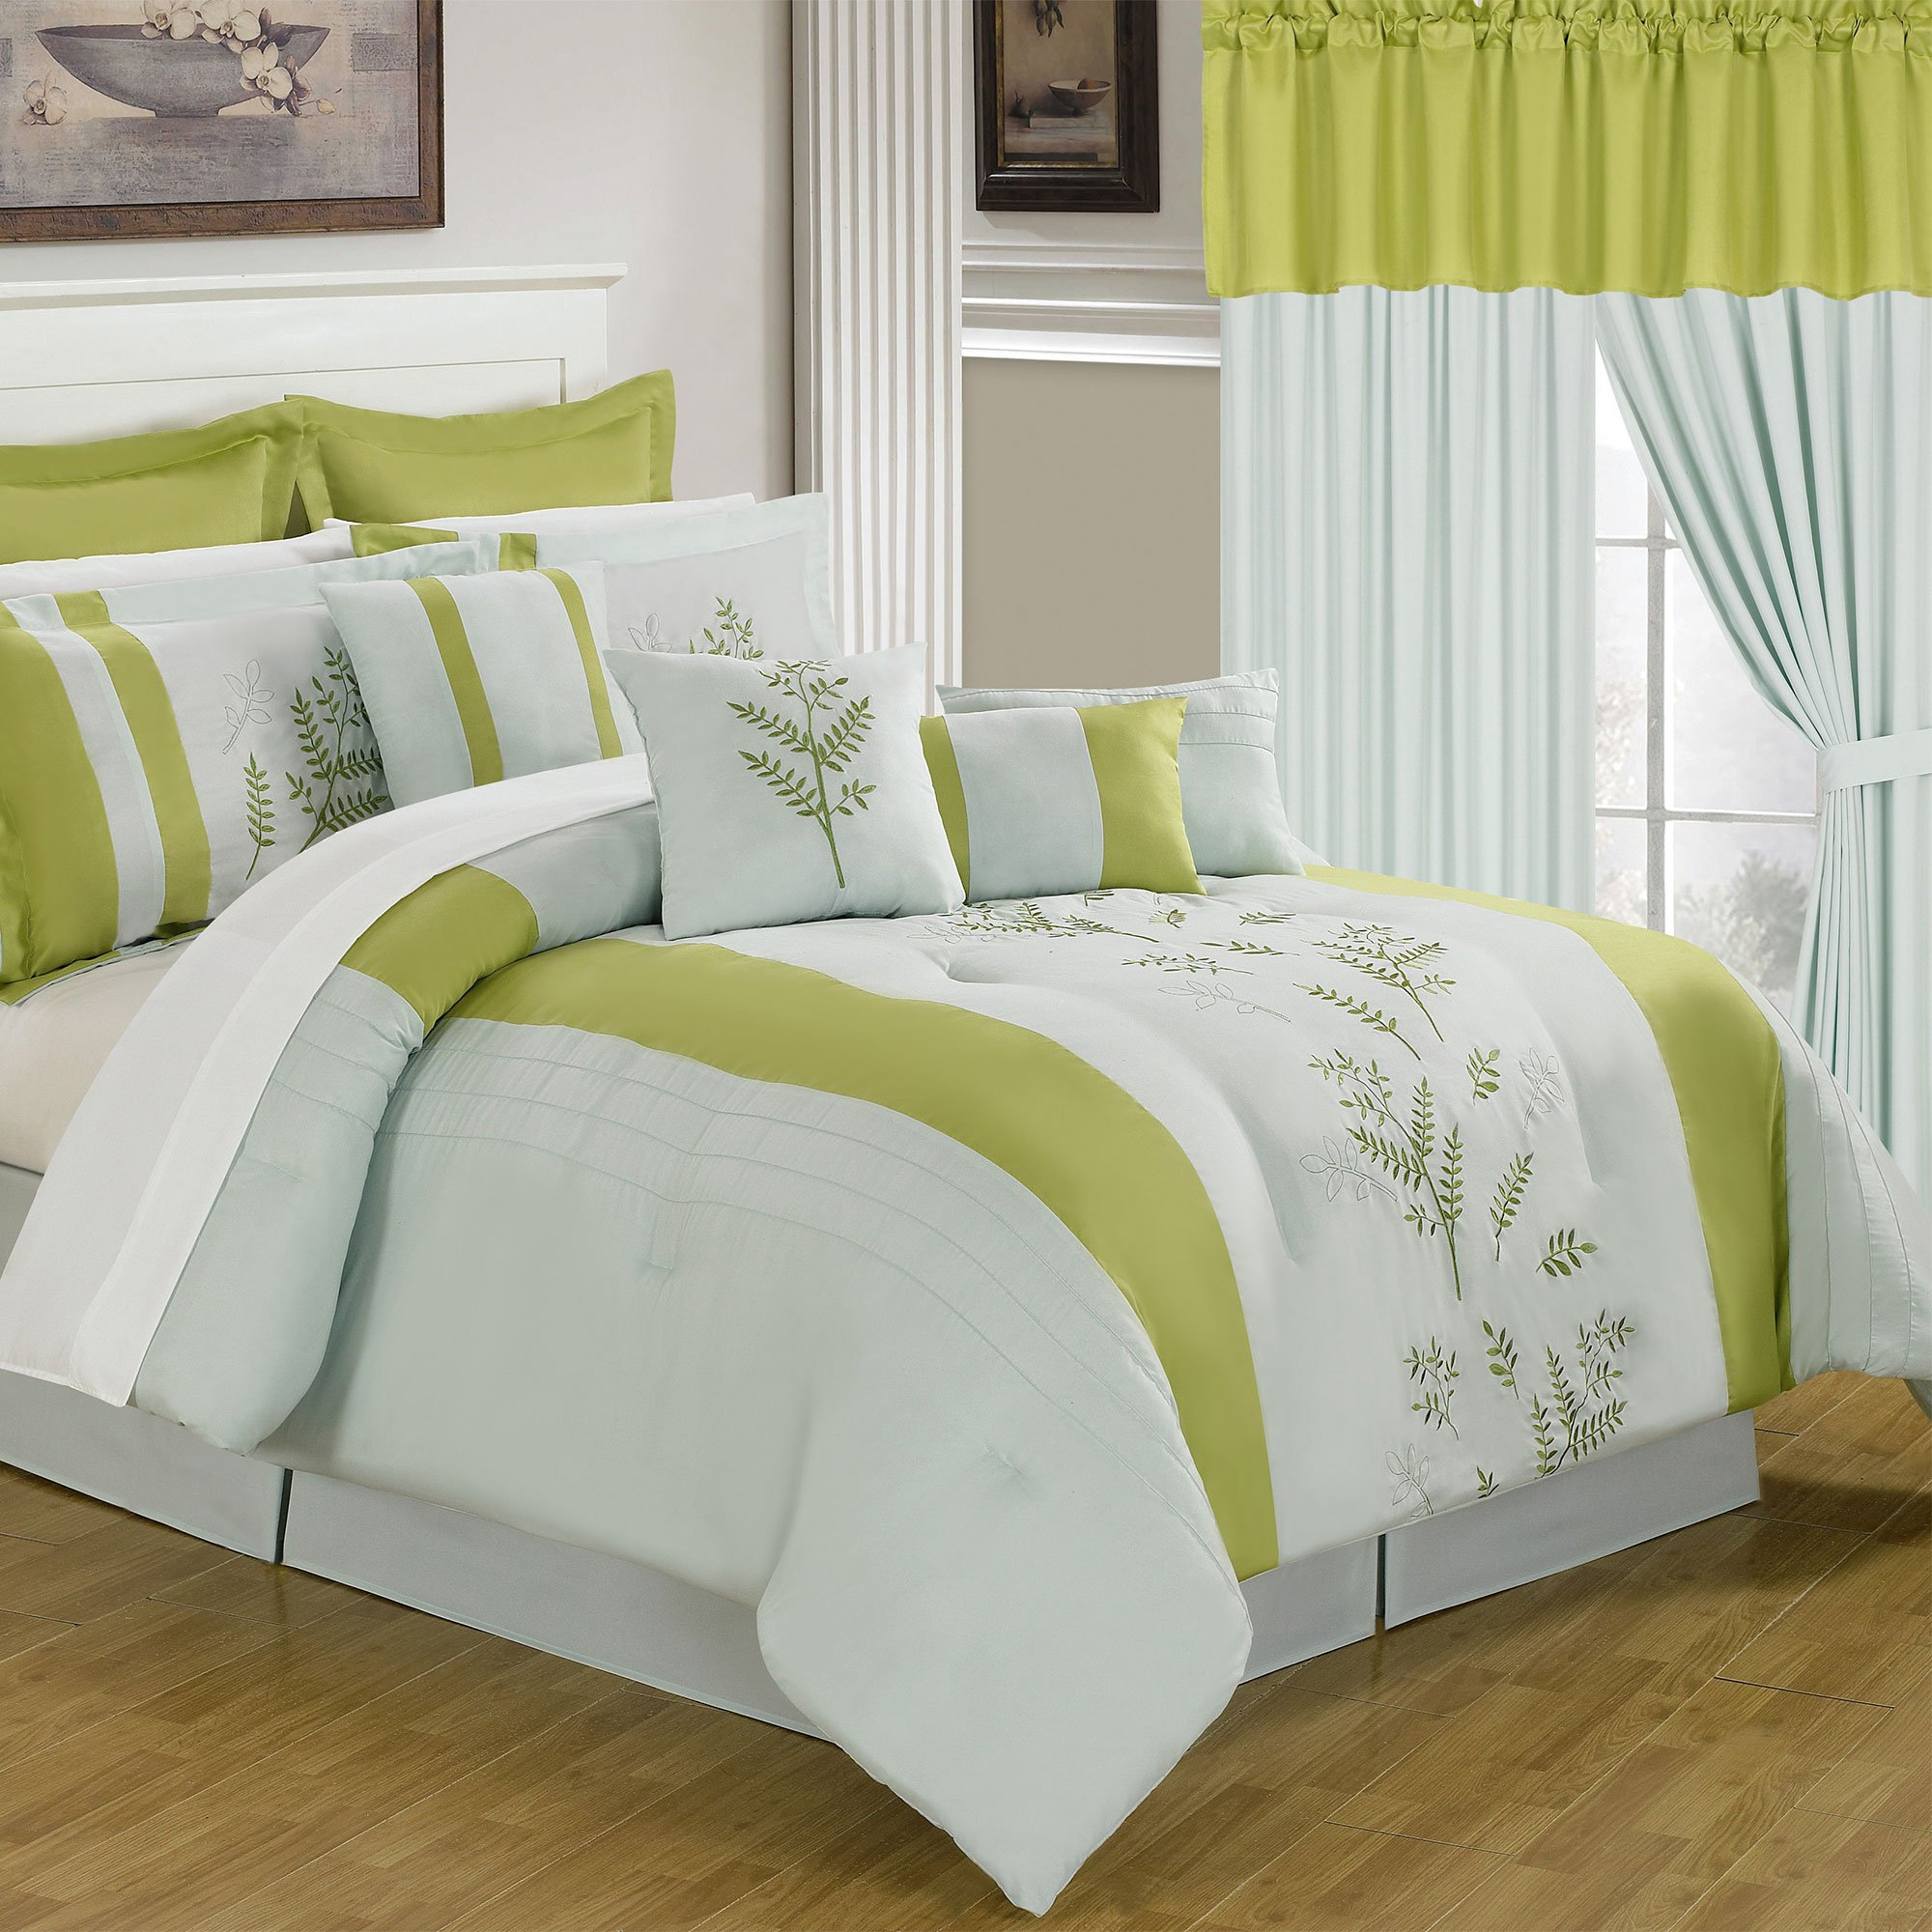 Bedford Home 66A-04796 24-Piece Room-in-a-Bag Maria Bedroom Set, King